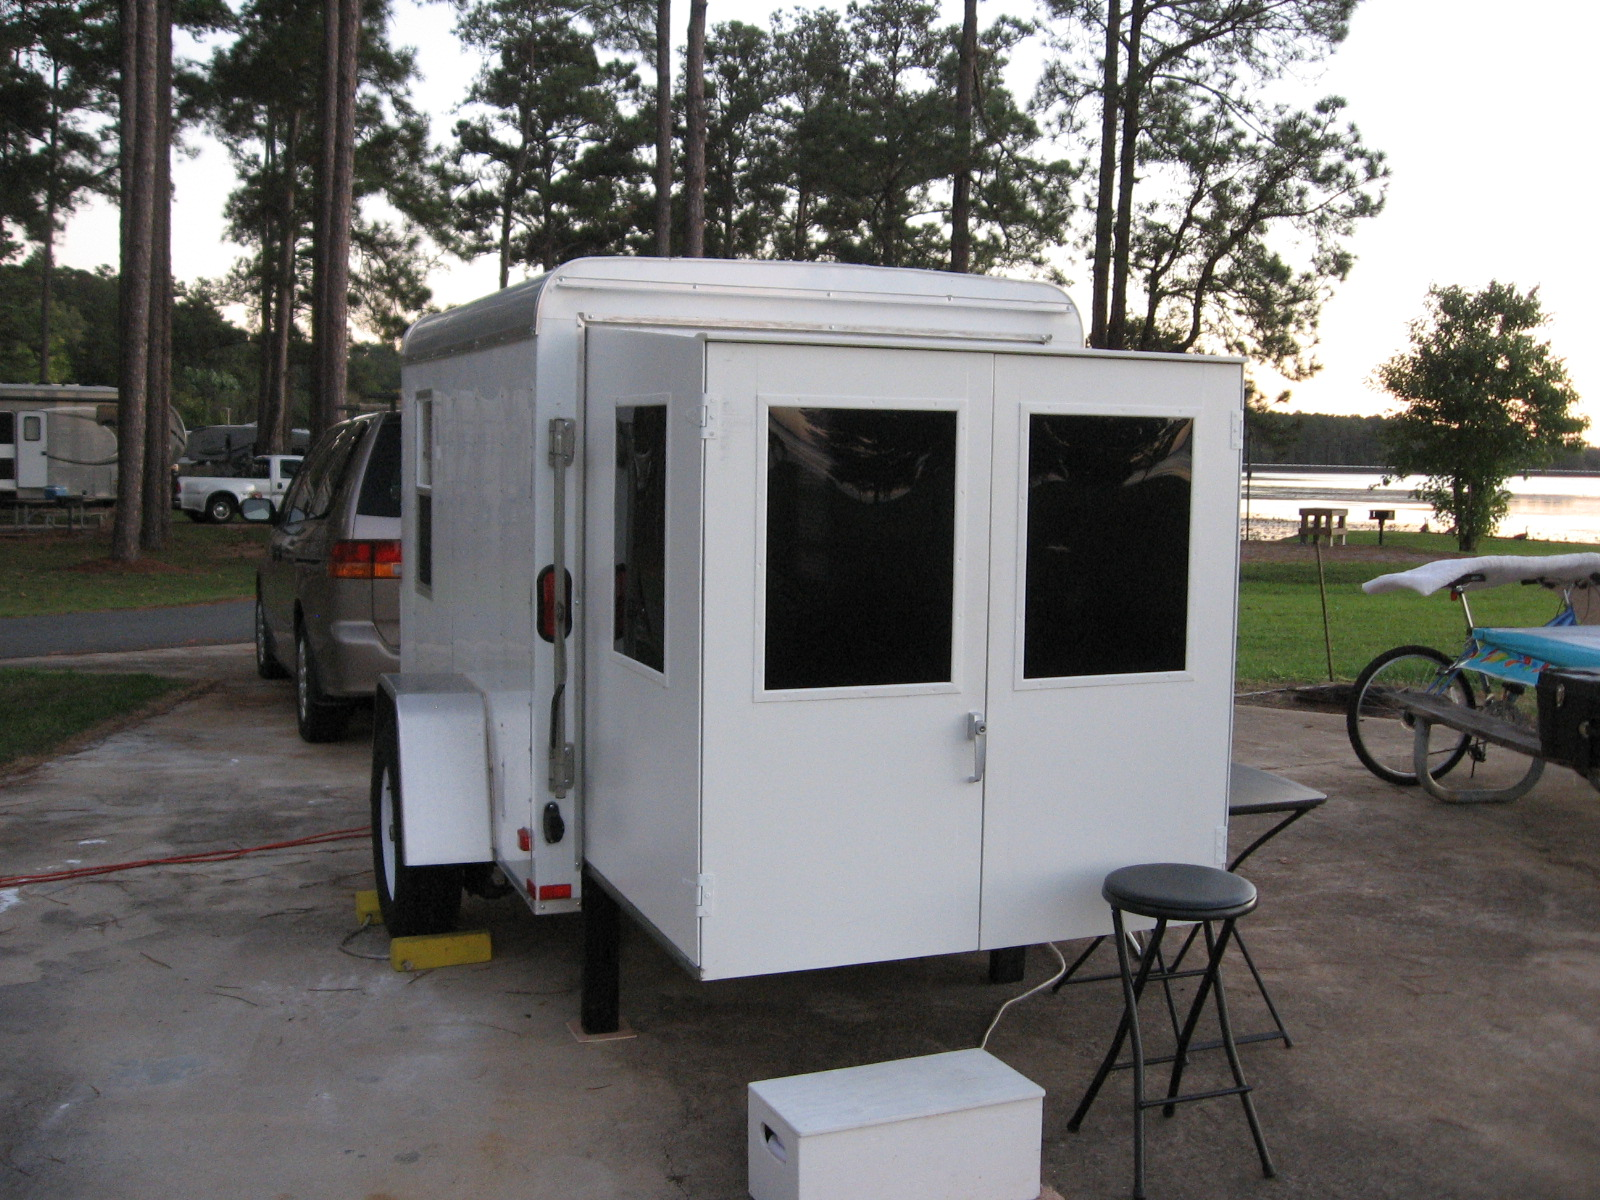 Life as I live it: Utility Trailer/Camper